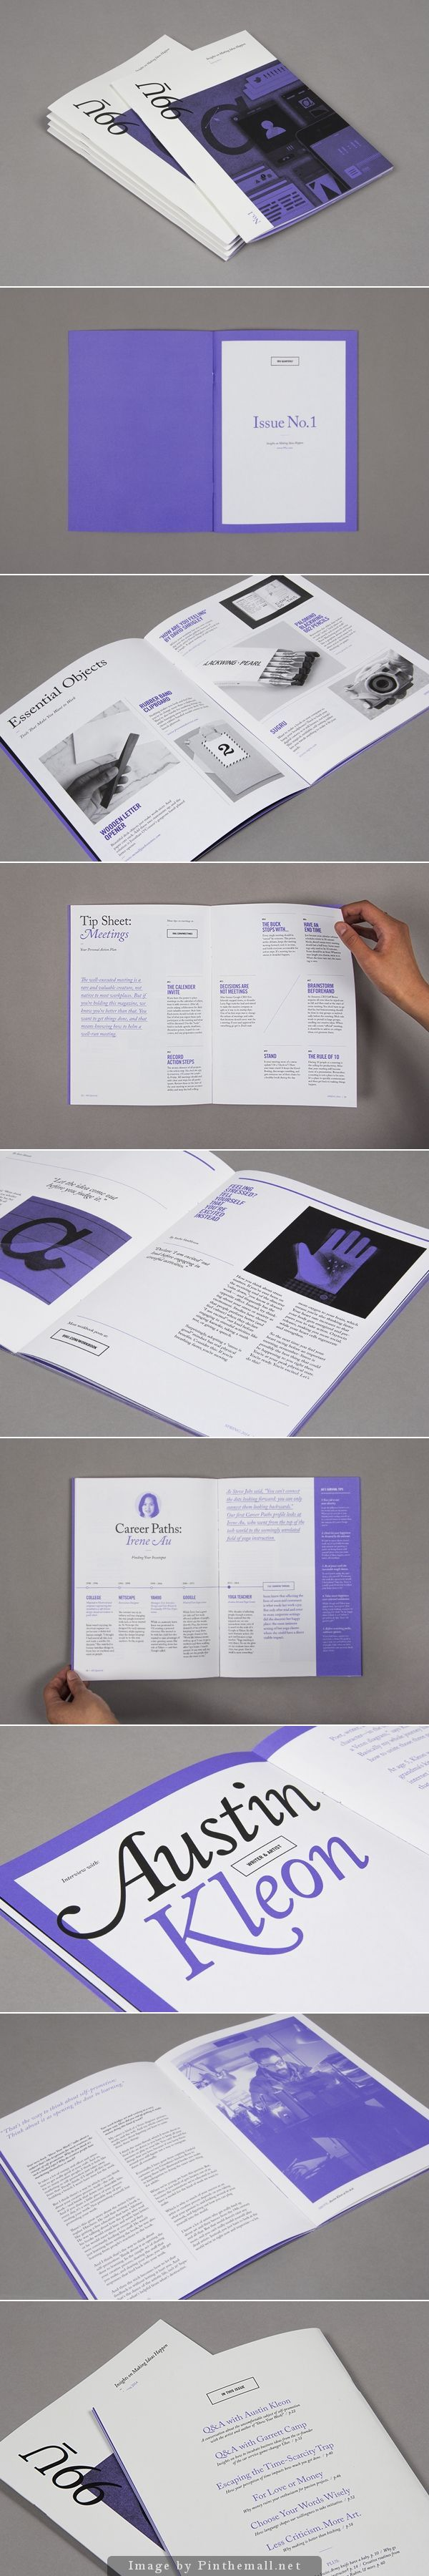 Introducing the New 99U Quarterly Magazine - Issue No.1 #booklet #MultipleOwners